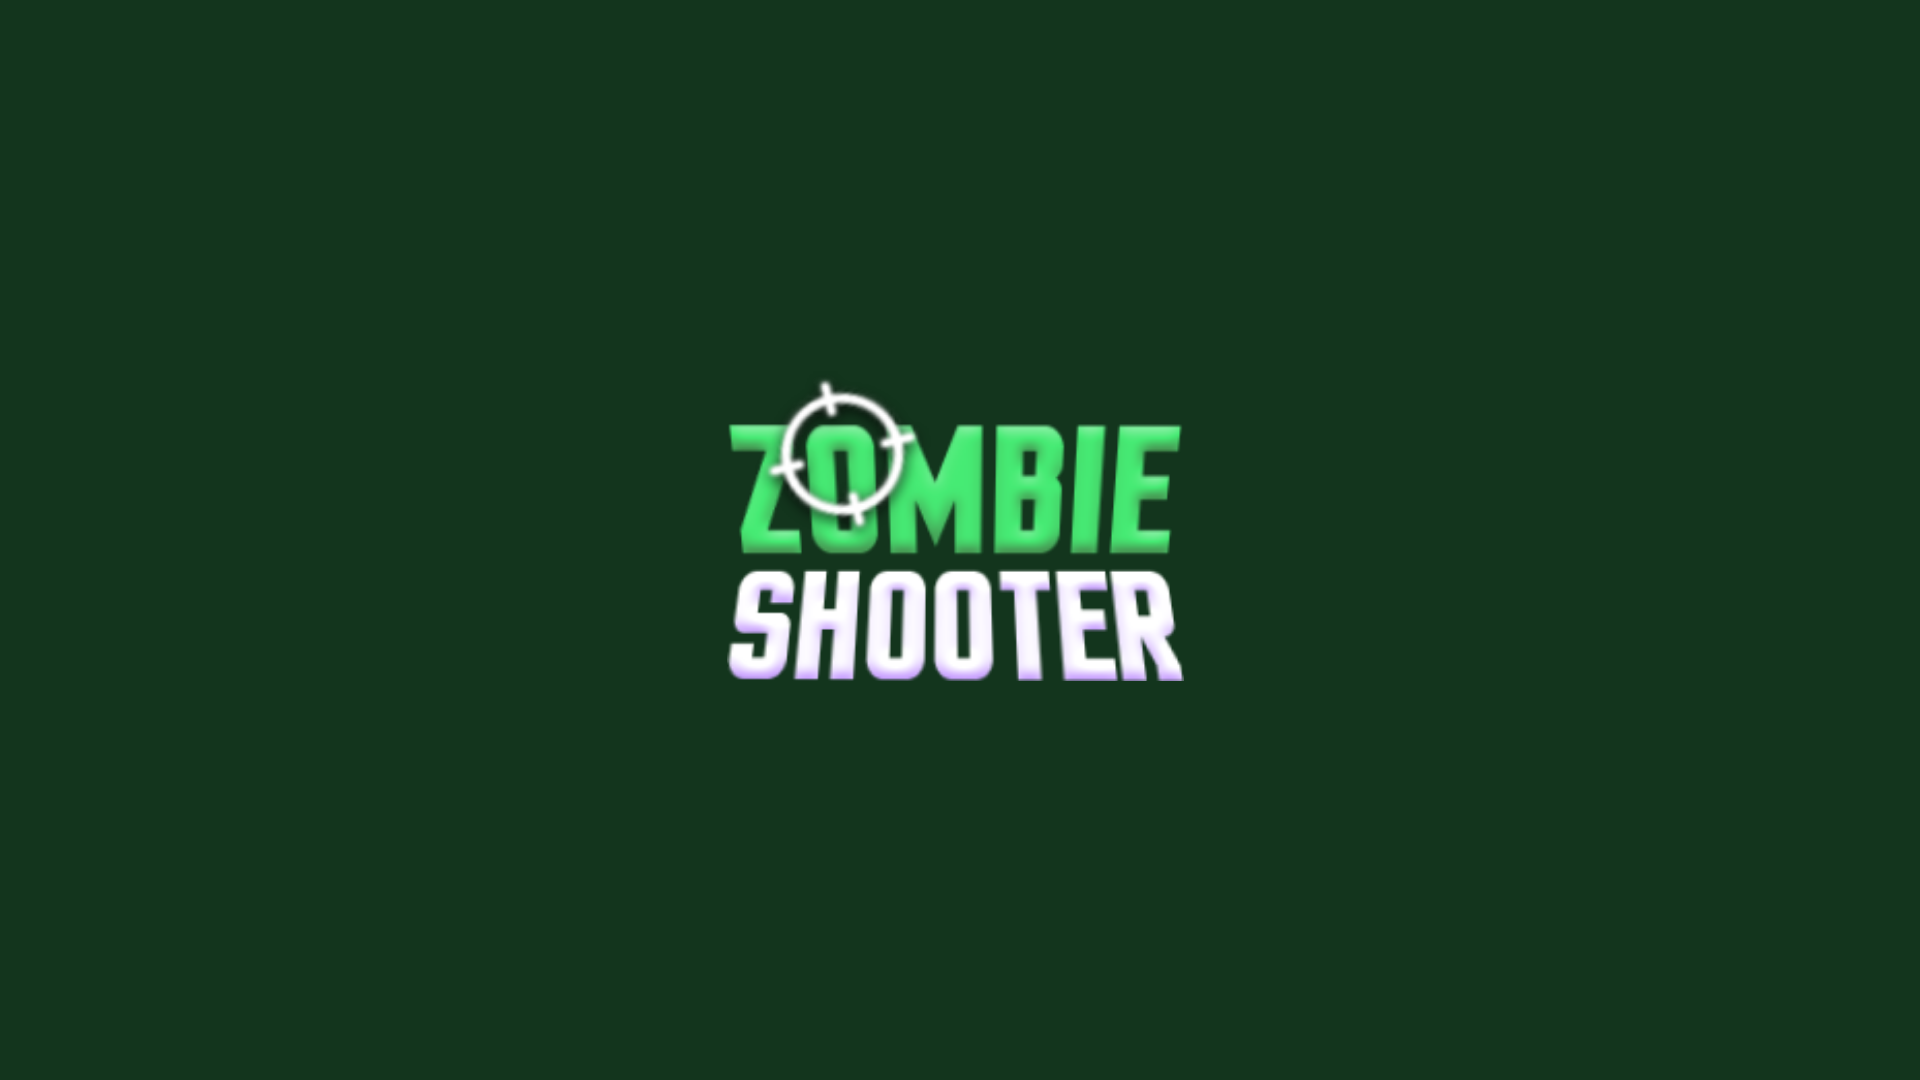 FREE Zombie Shooter (Soundtracks/FX pack)